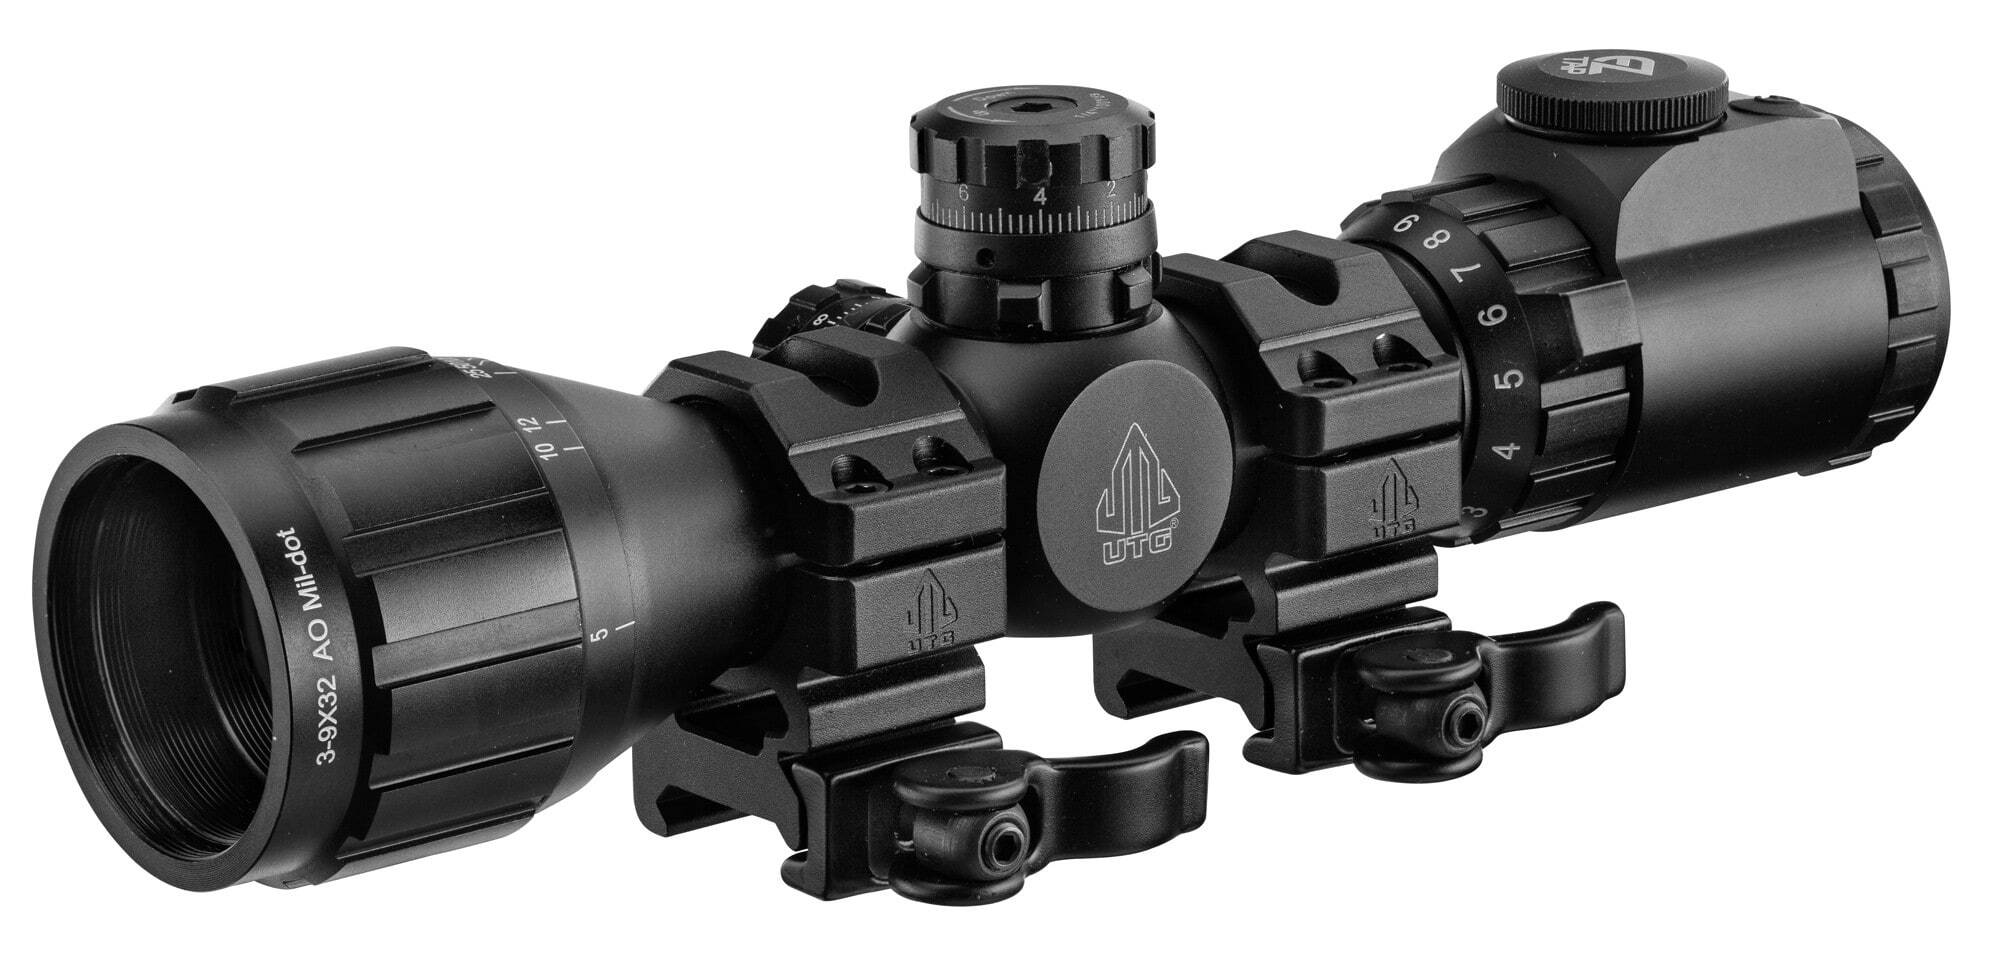 OP6721-1 UTG Mildot rifle scope - OP6721